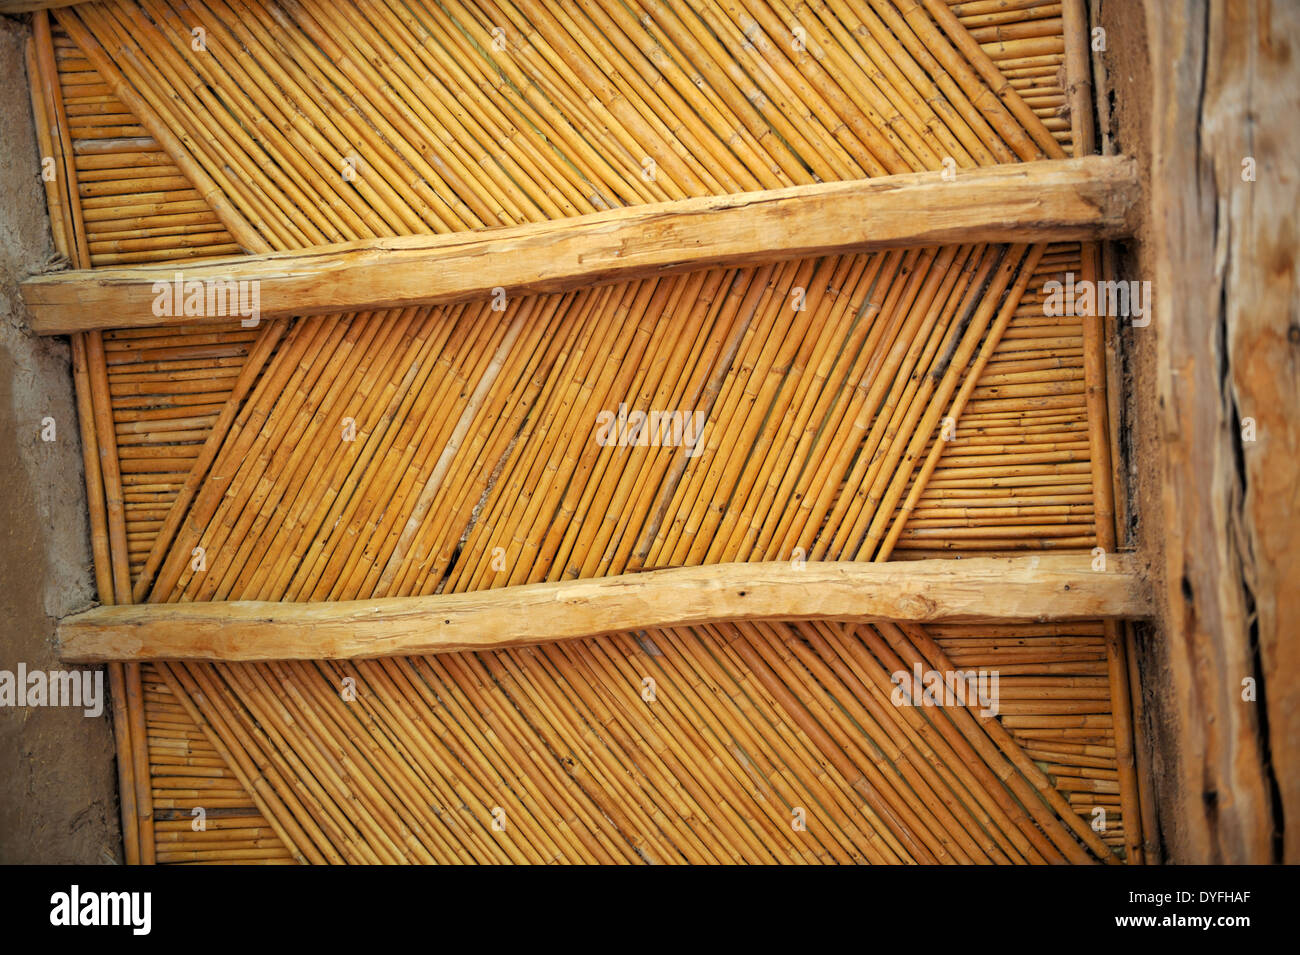 Wooden Ceiling Beams Stock Photos Amp Wooden Ceiling Beams